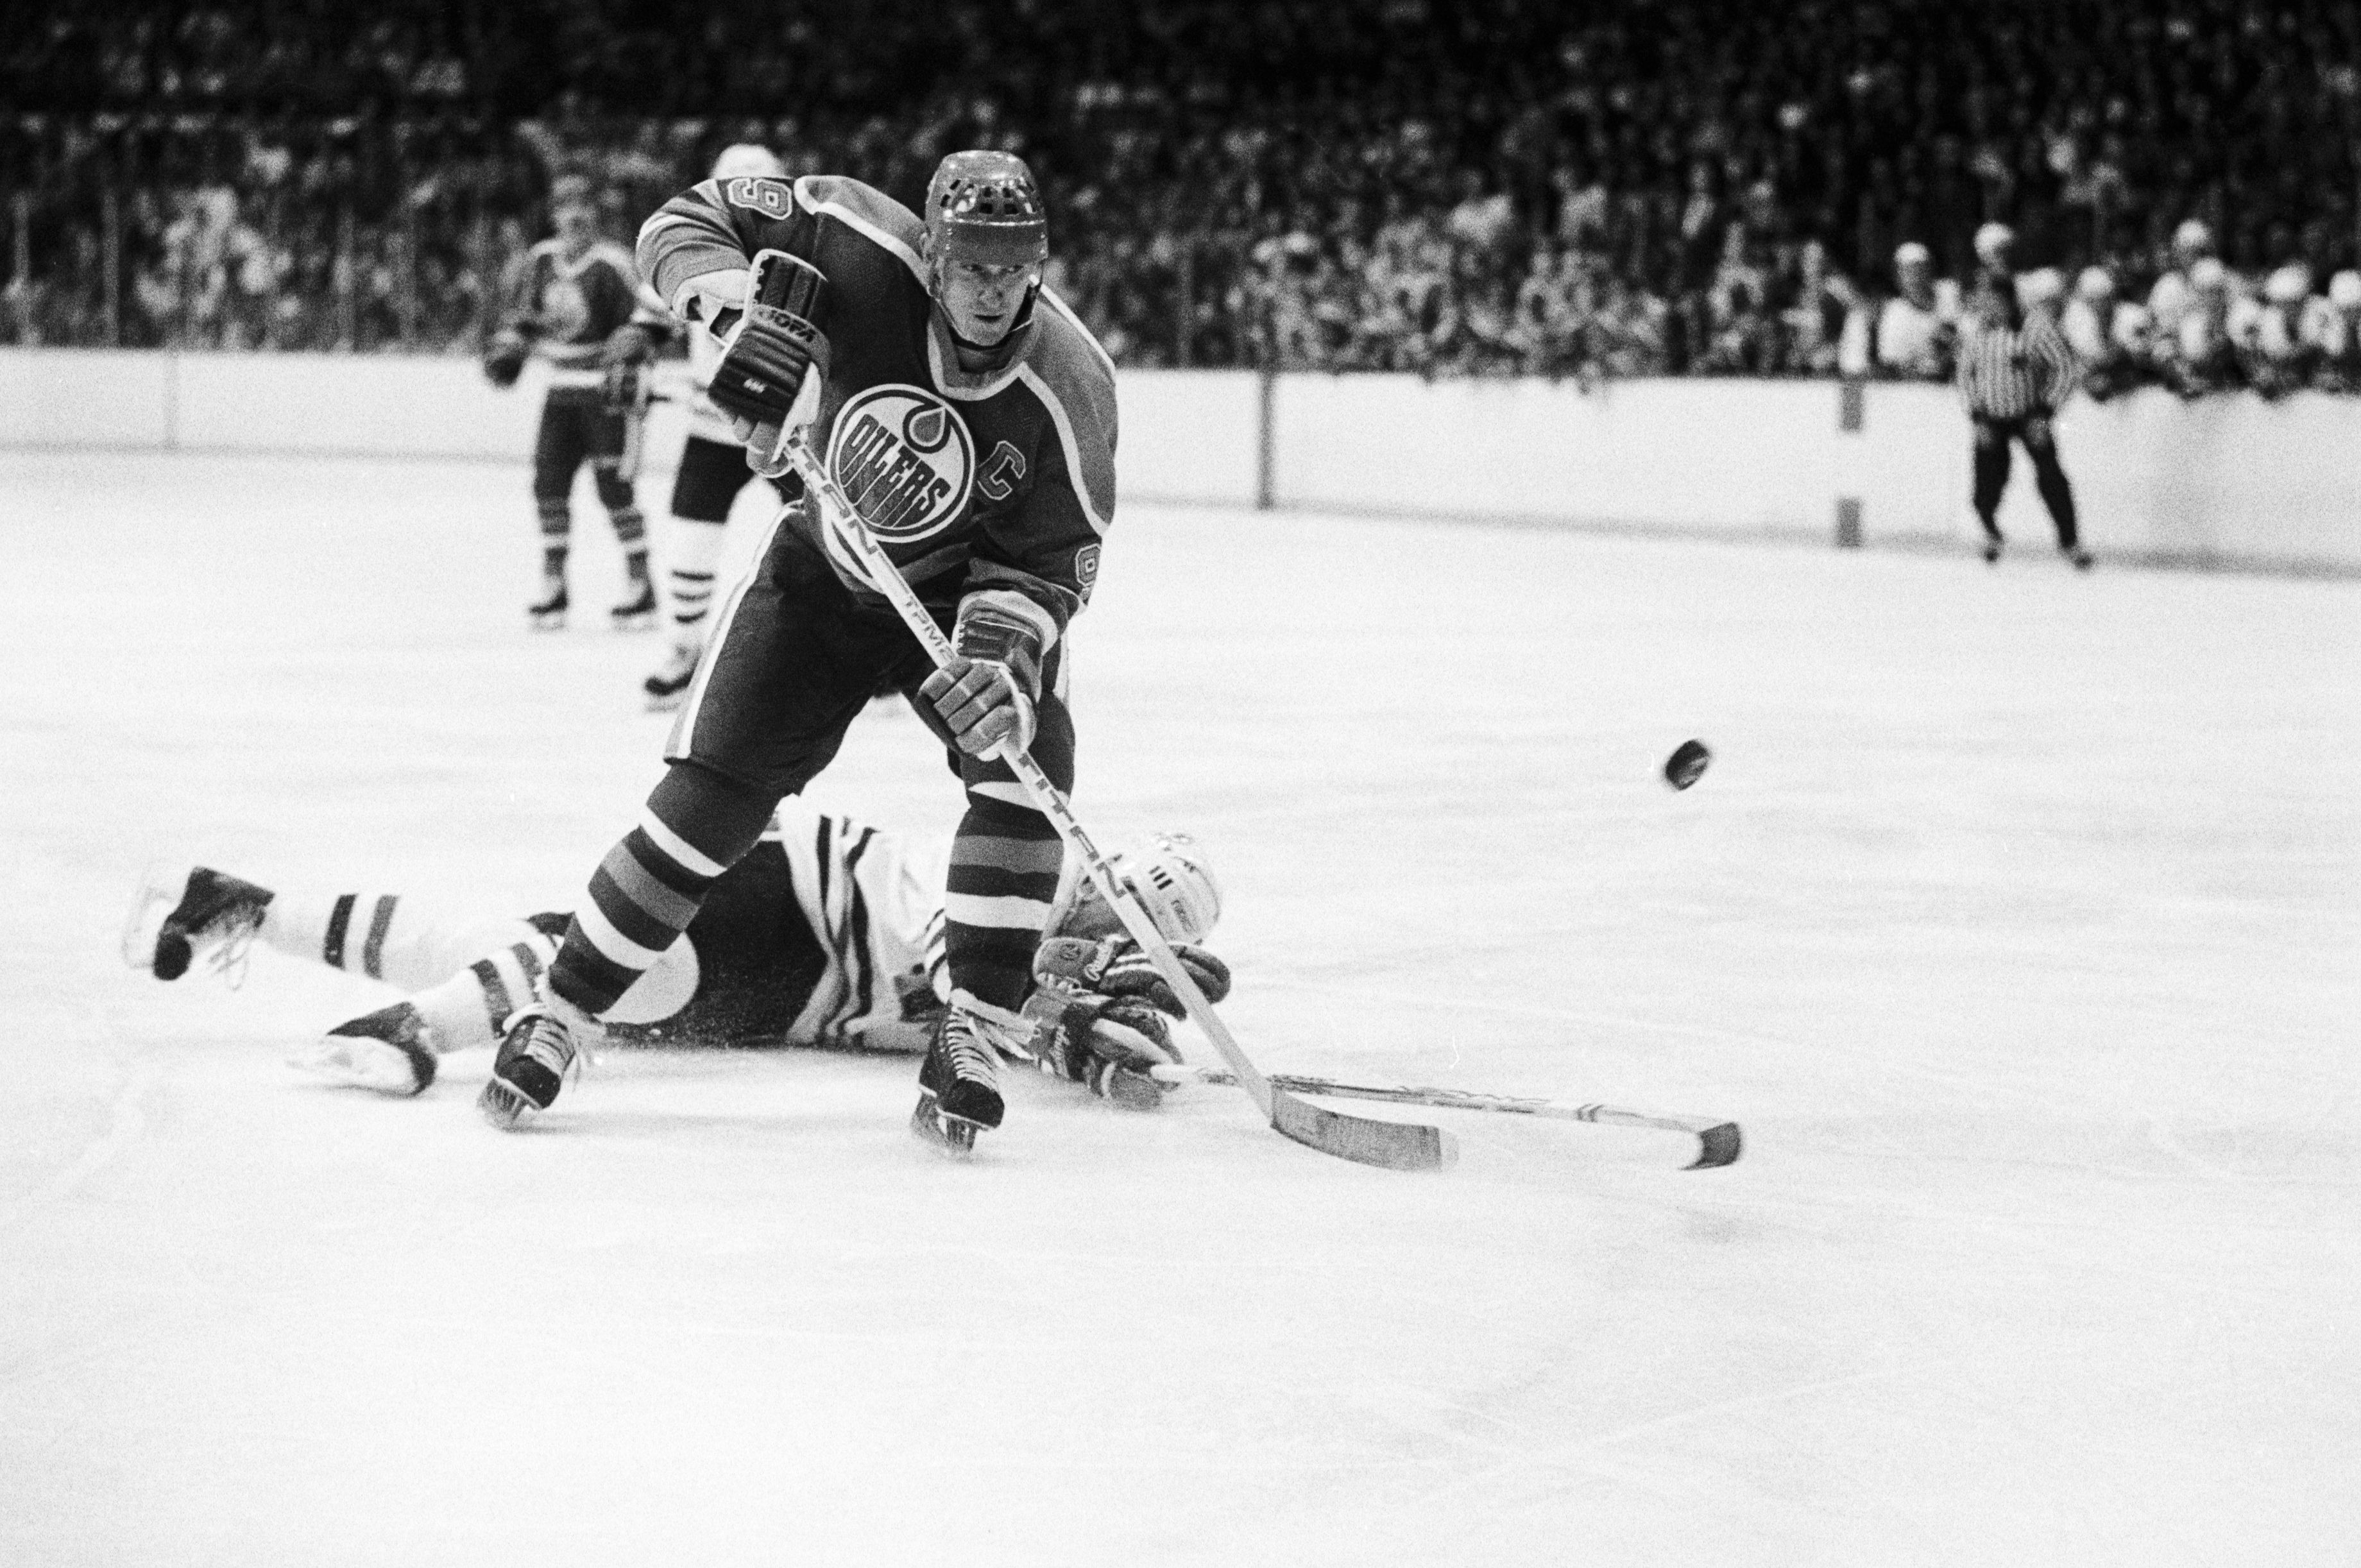 Top 5 Highest Scoring Games In Nhl History